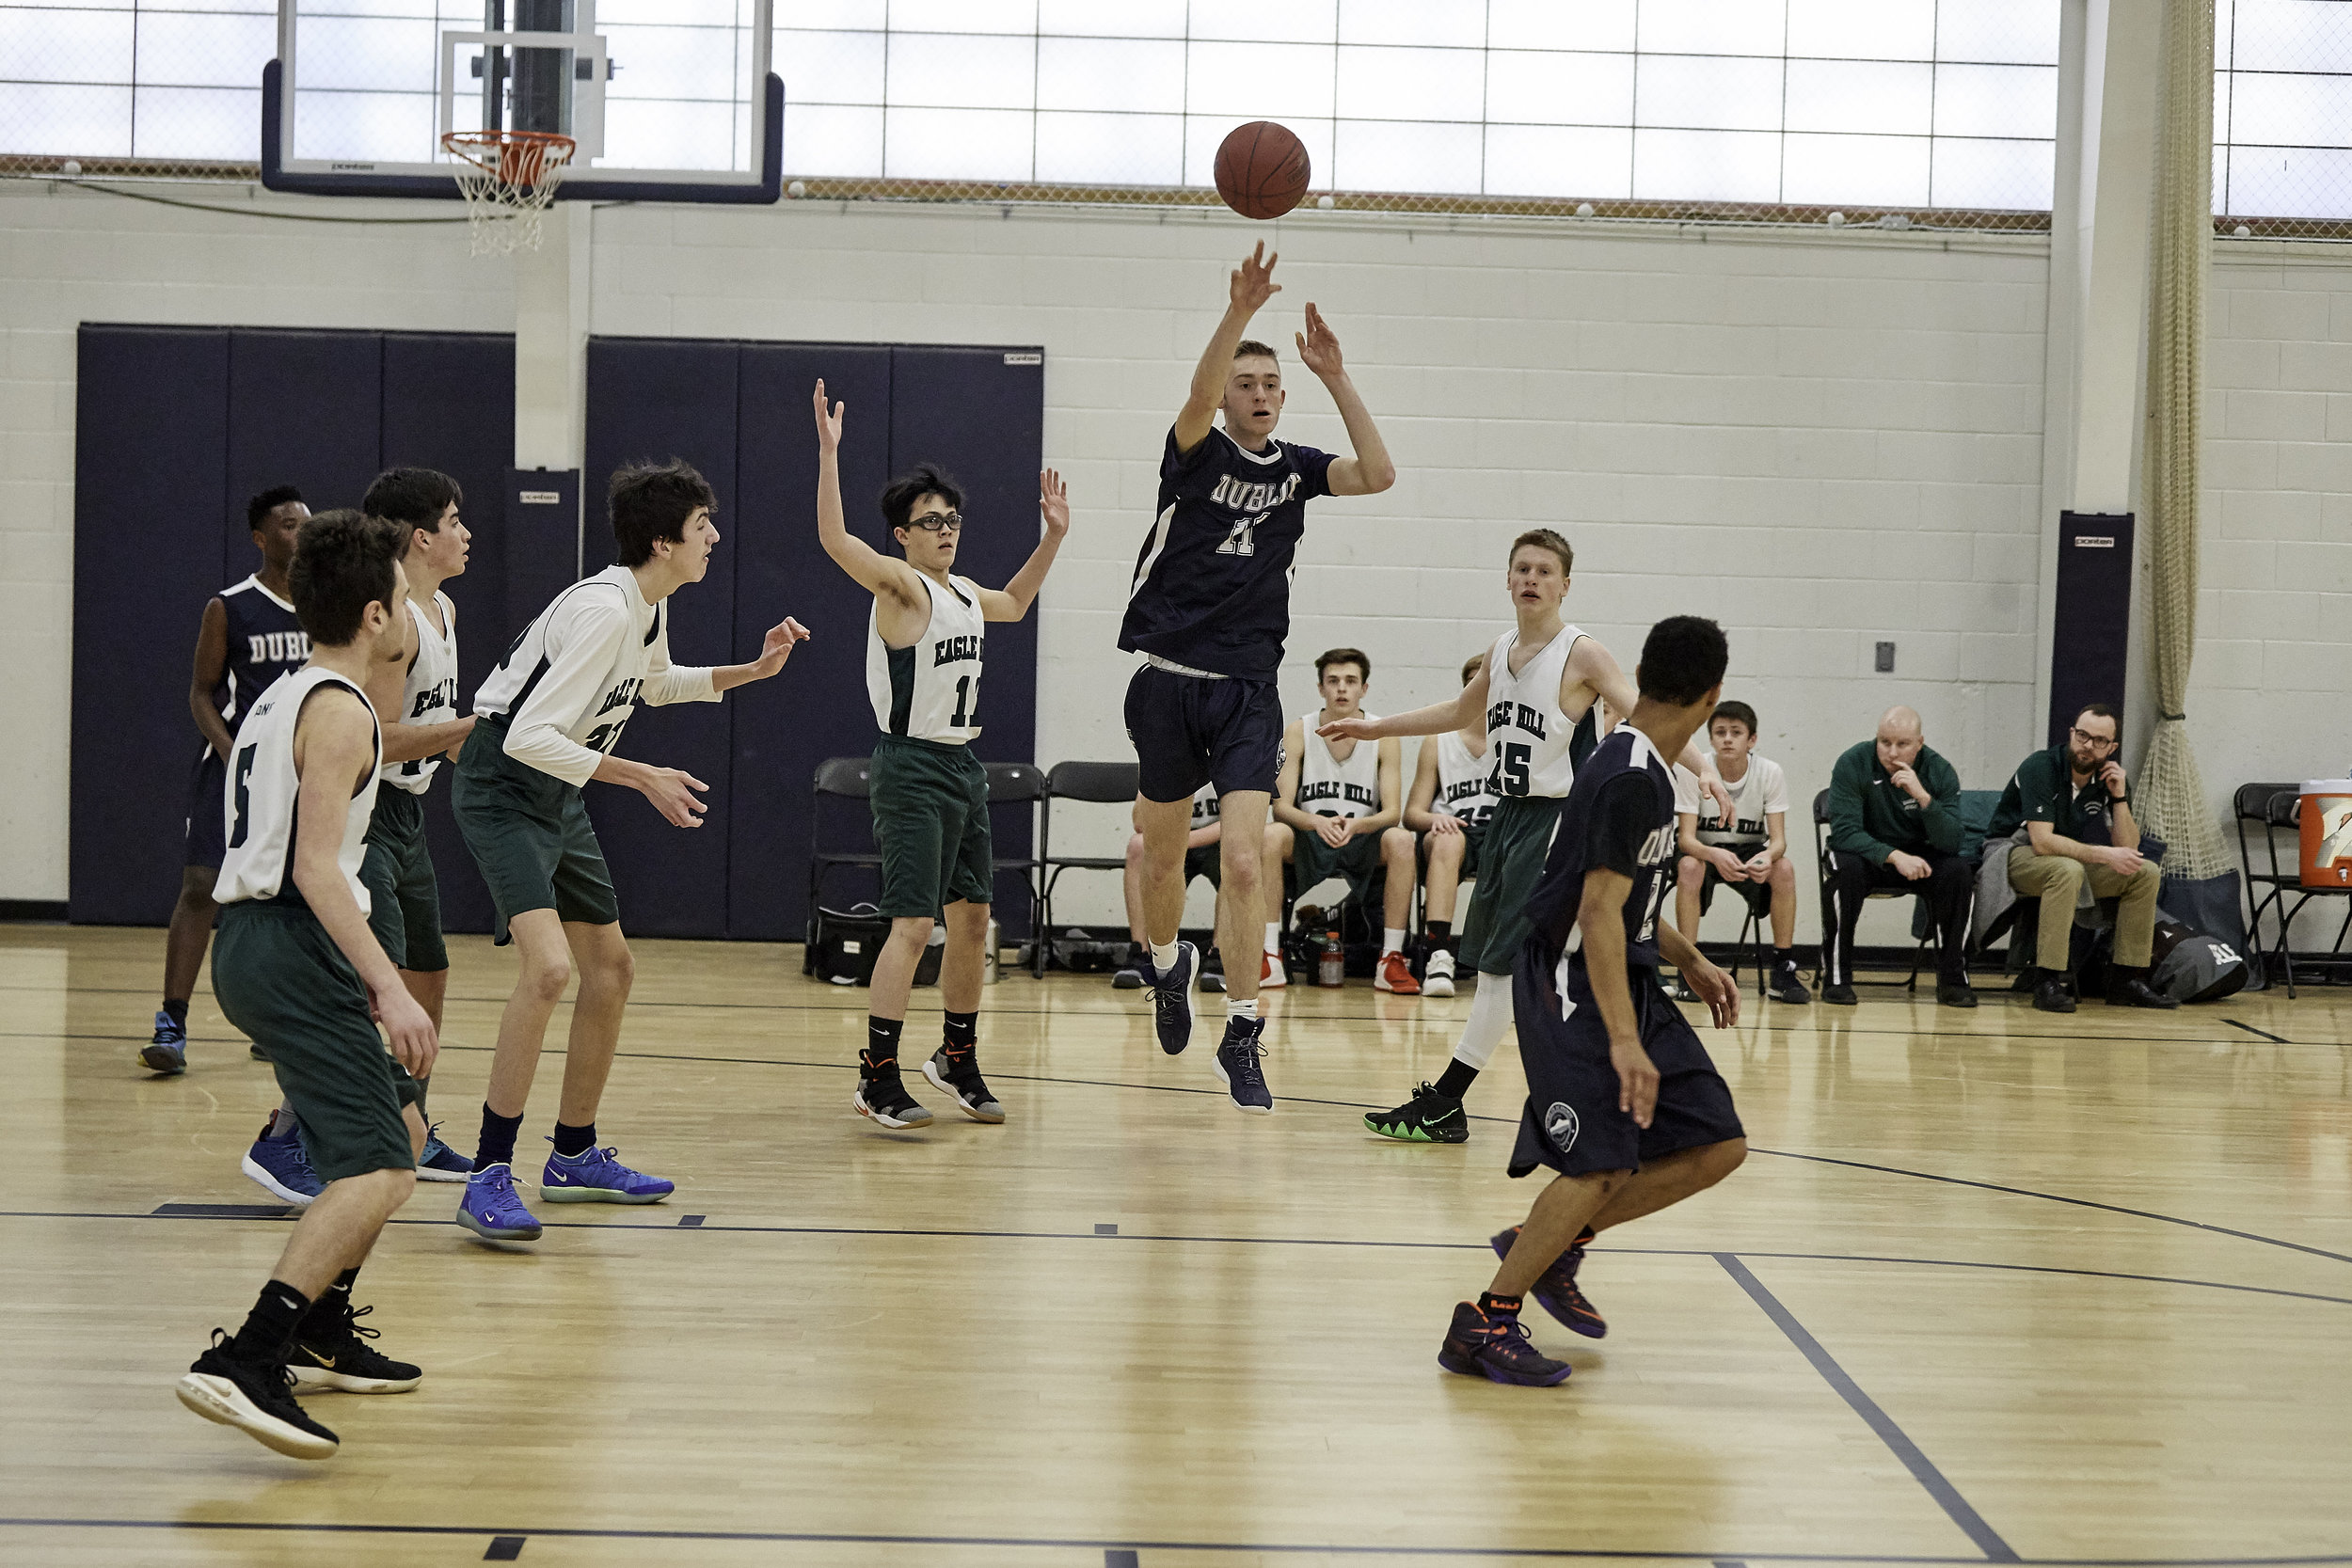 Boys Varsity Basketball vs. Eagle Hill School JV at RVAL Tournament - February 11, 2019 - 167876.jpg